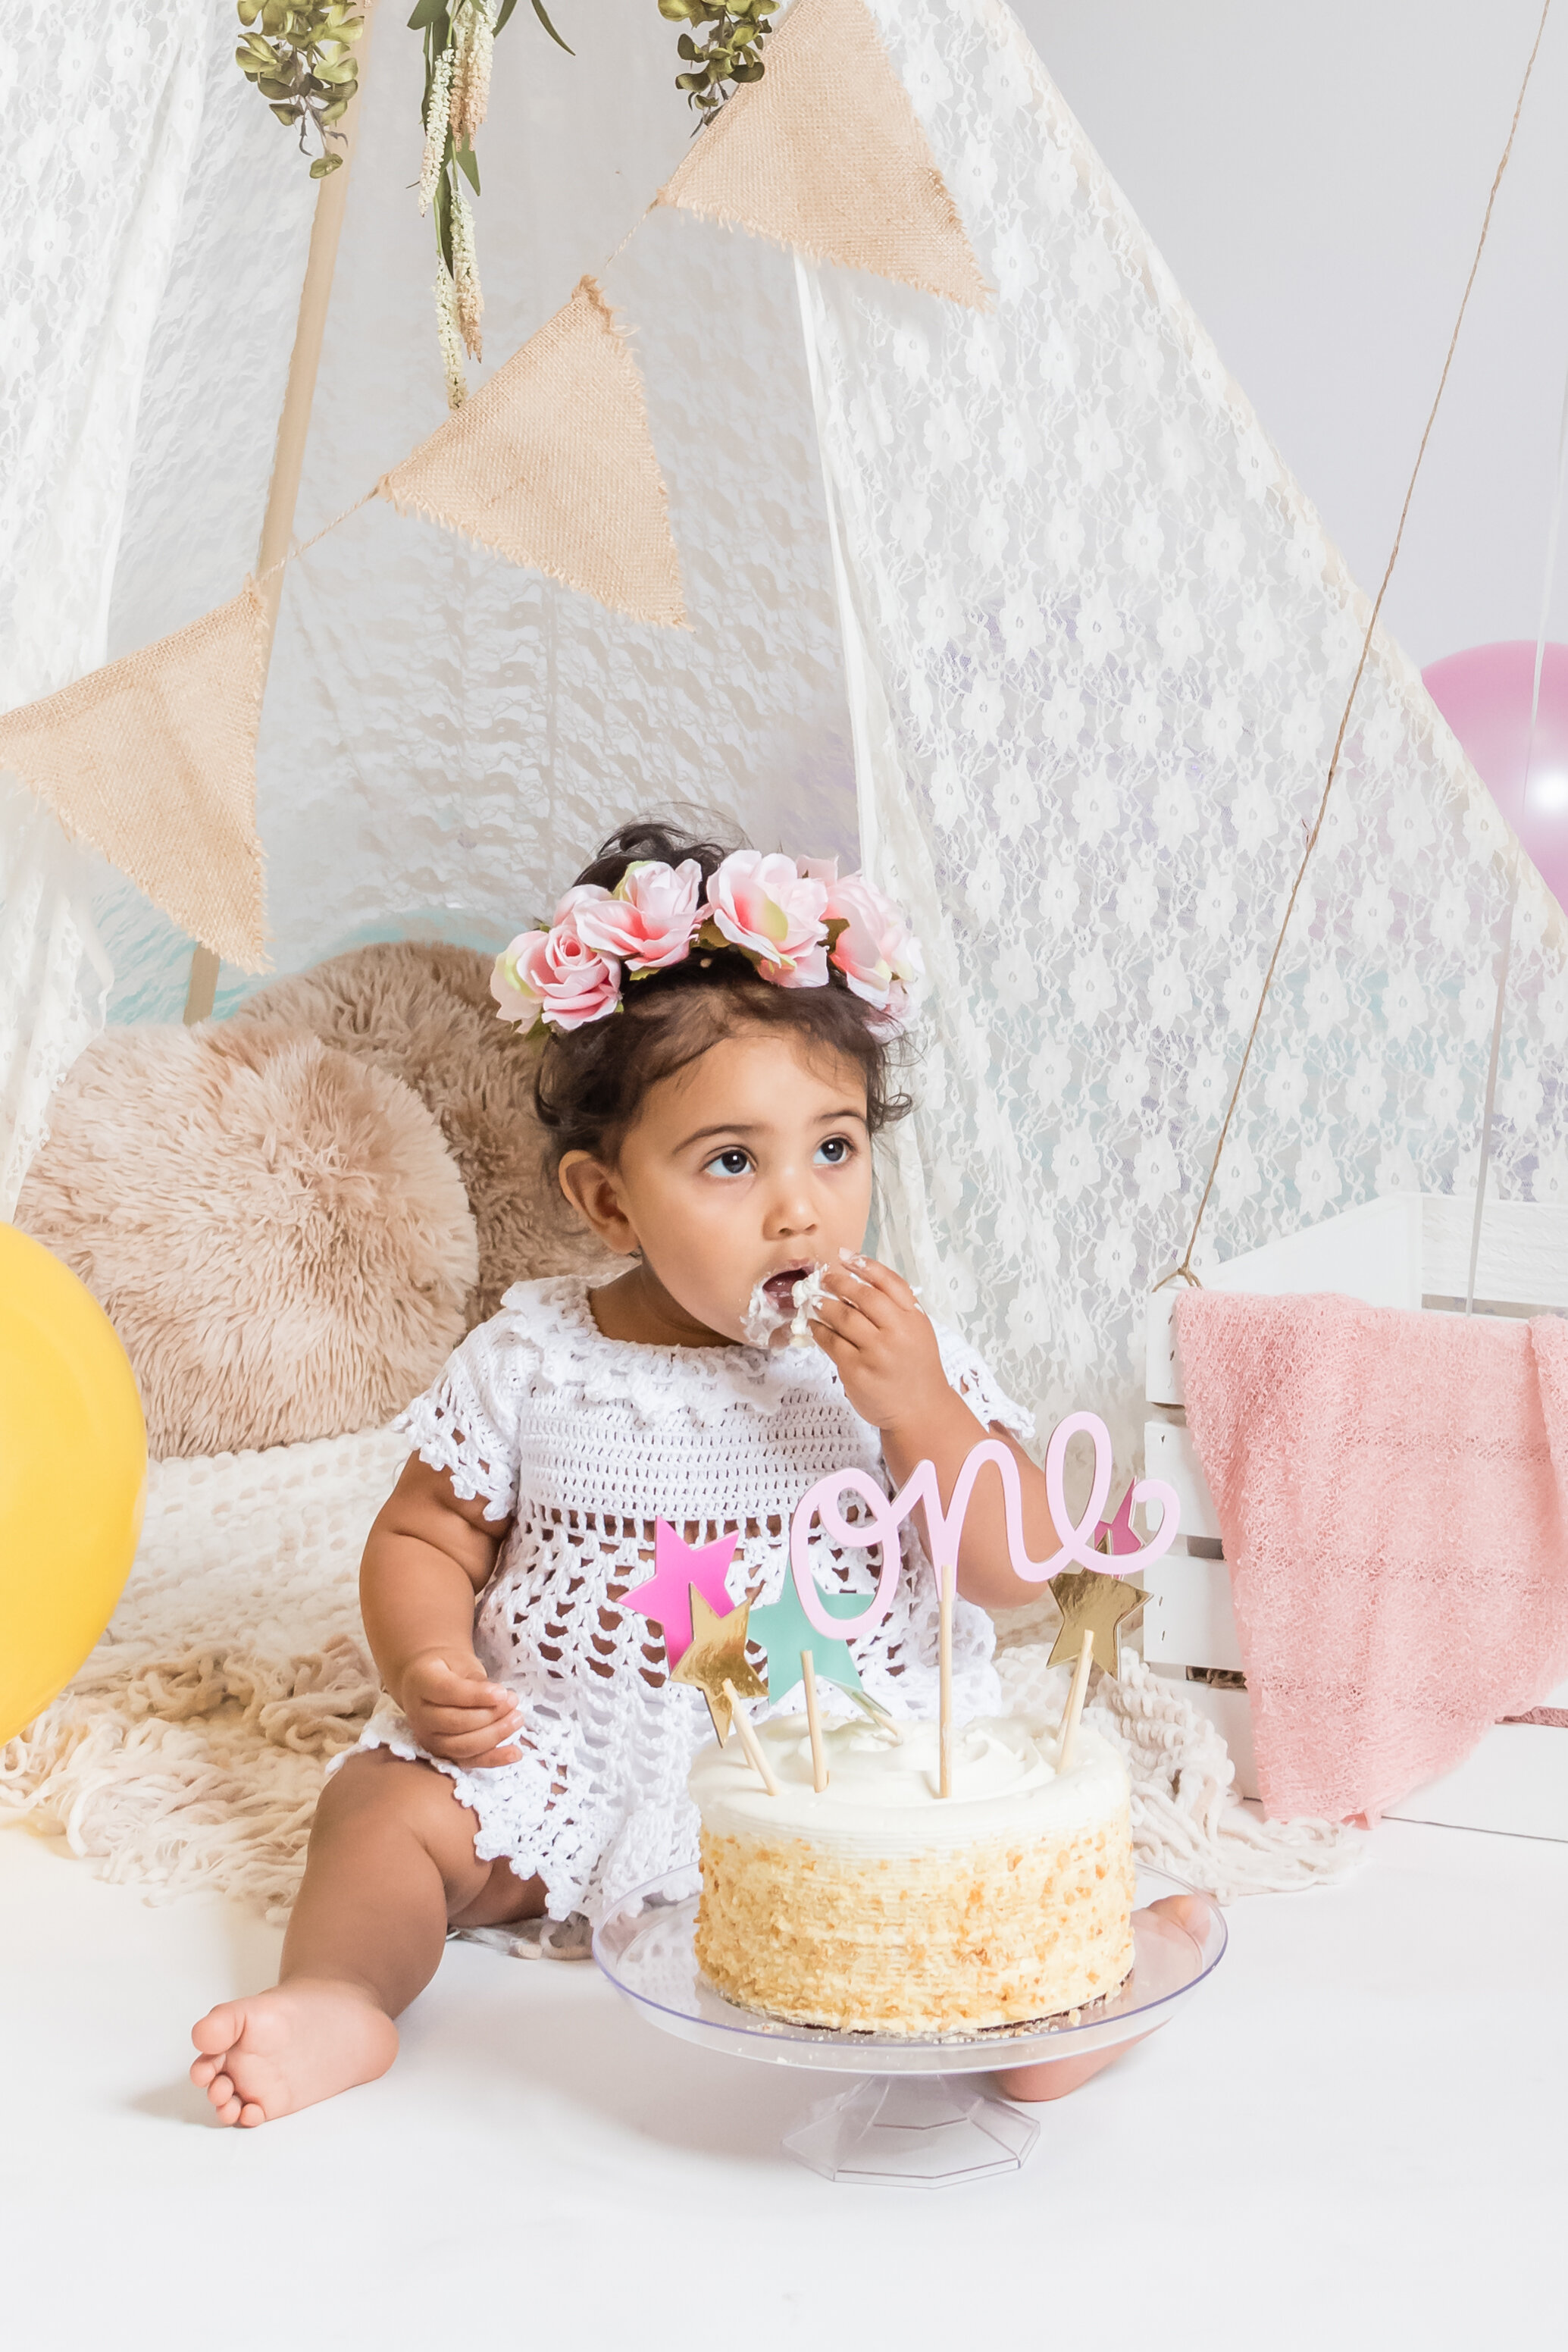 Specialty + Custom Sessions - Cake Smash and everything in between! The cake smash session includes a white, round cake with a cake topper that fits your theme. Have some decorations you want to use? Bring them along! Starting at $250